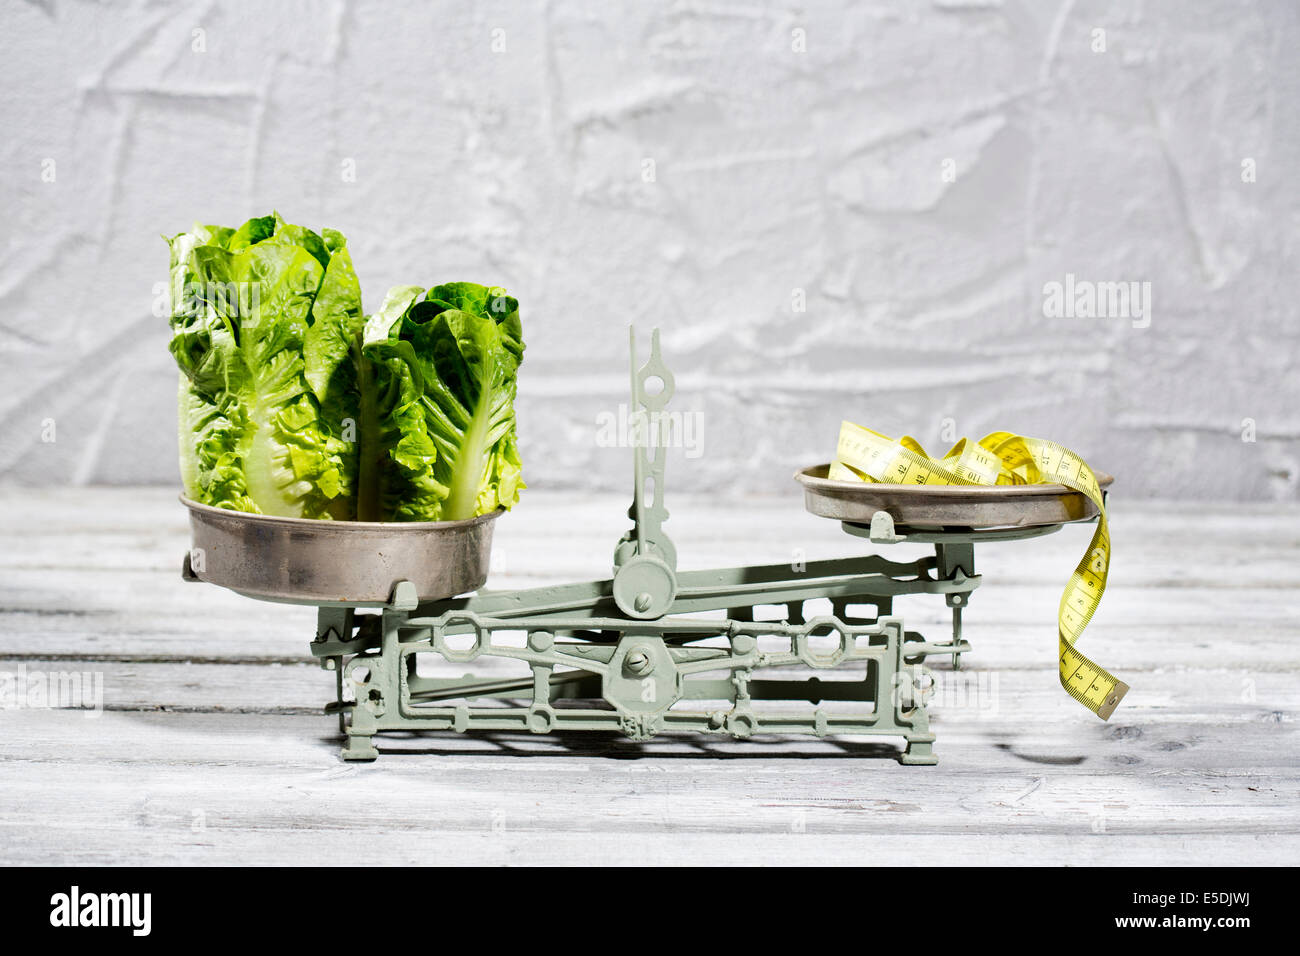 Lettuce and tape measure on scale - Stock Image